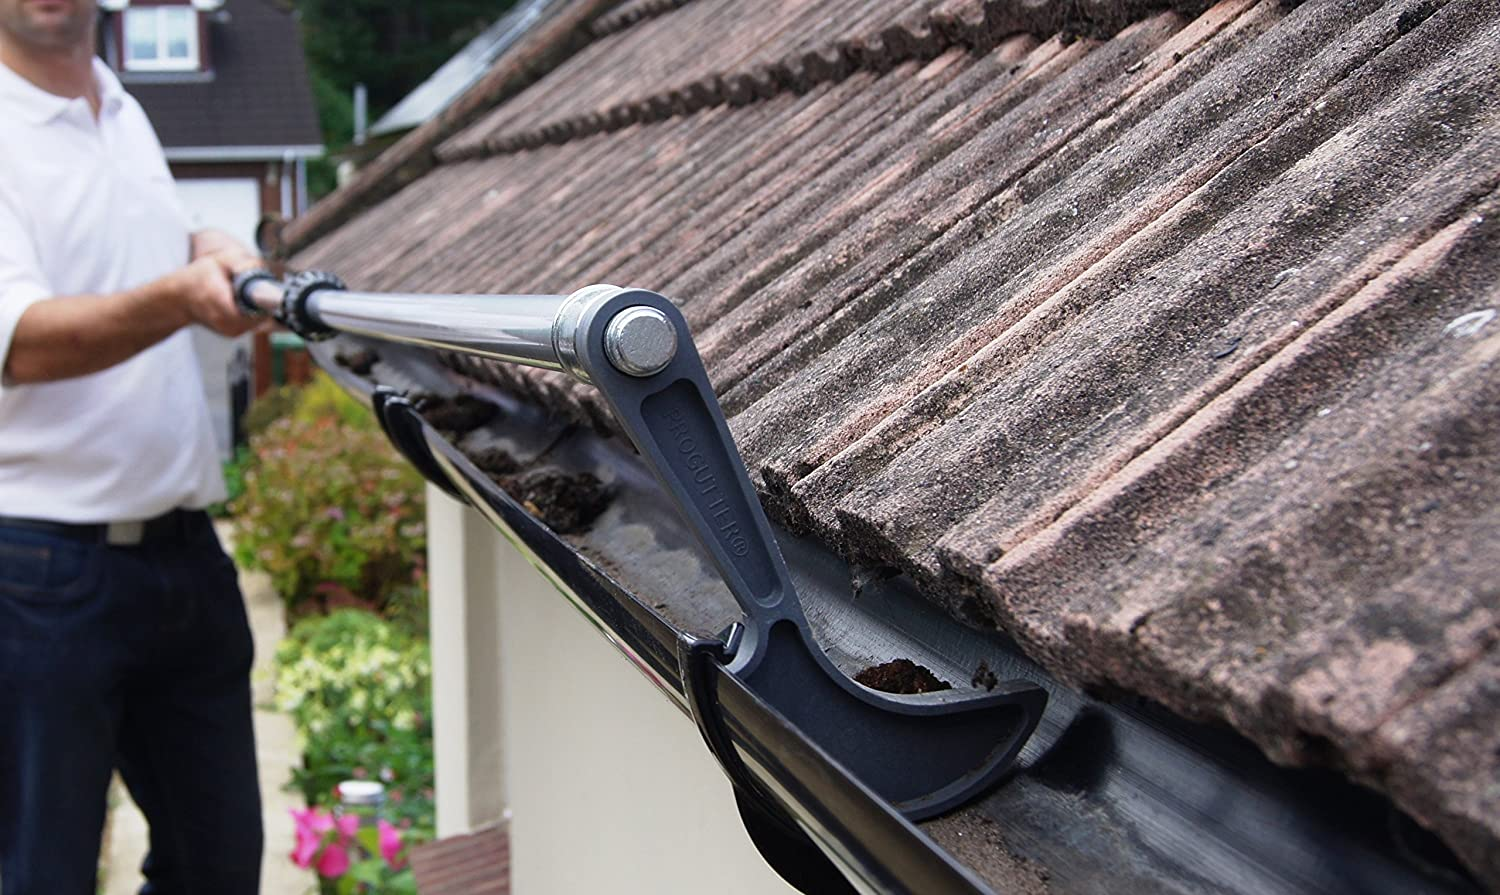 Gutter Cleaning - Why You Should Have Your Gutters Cleaned